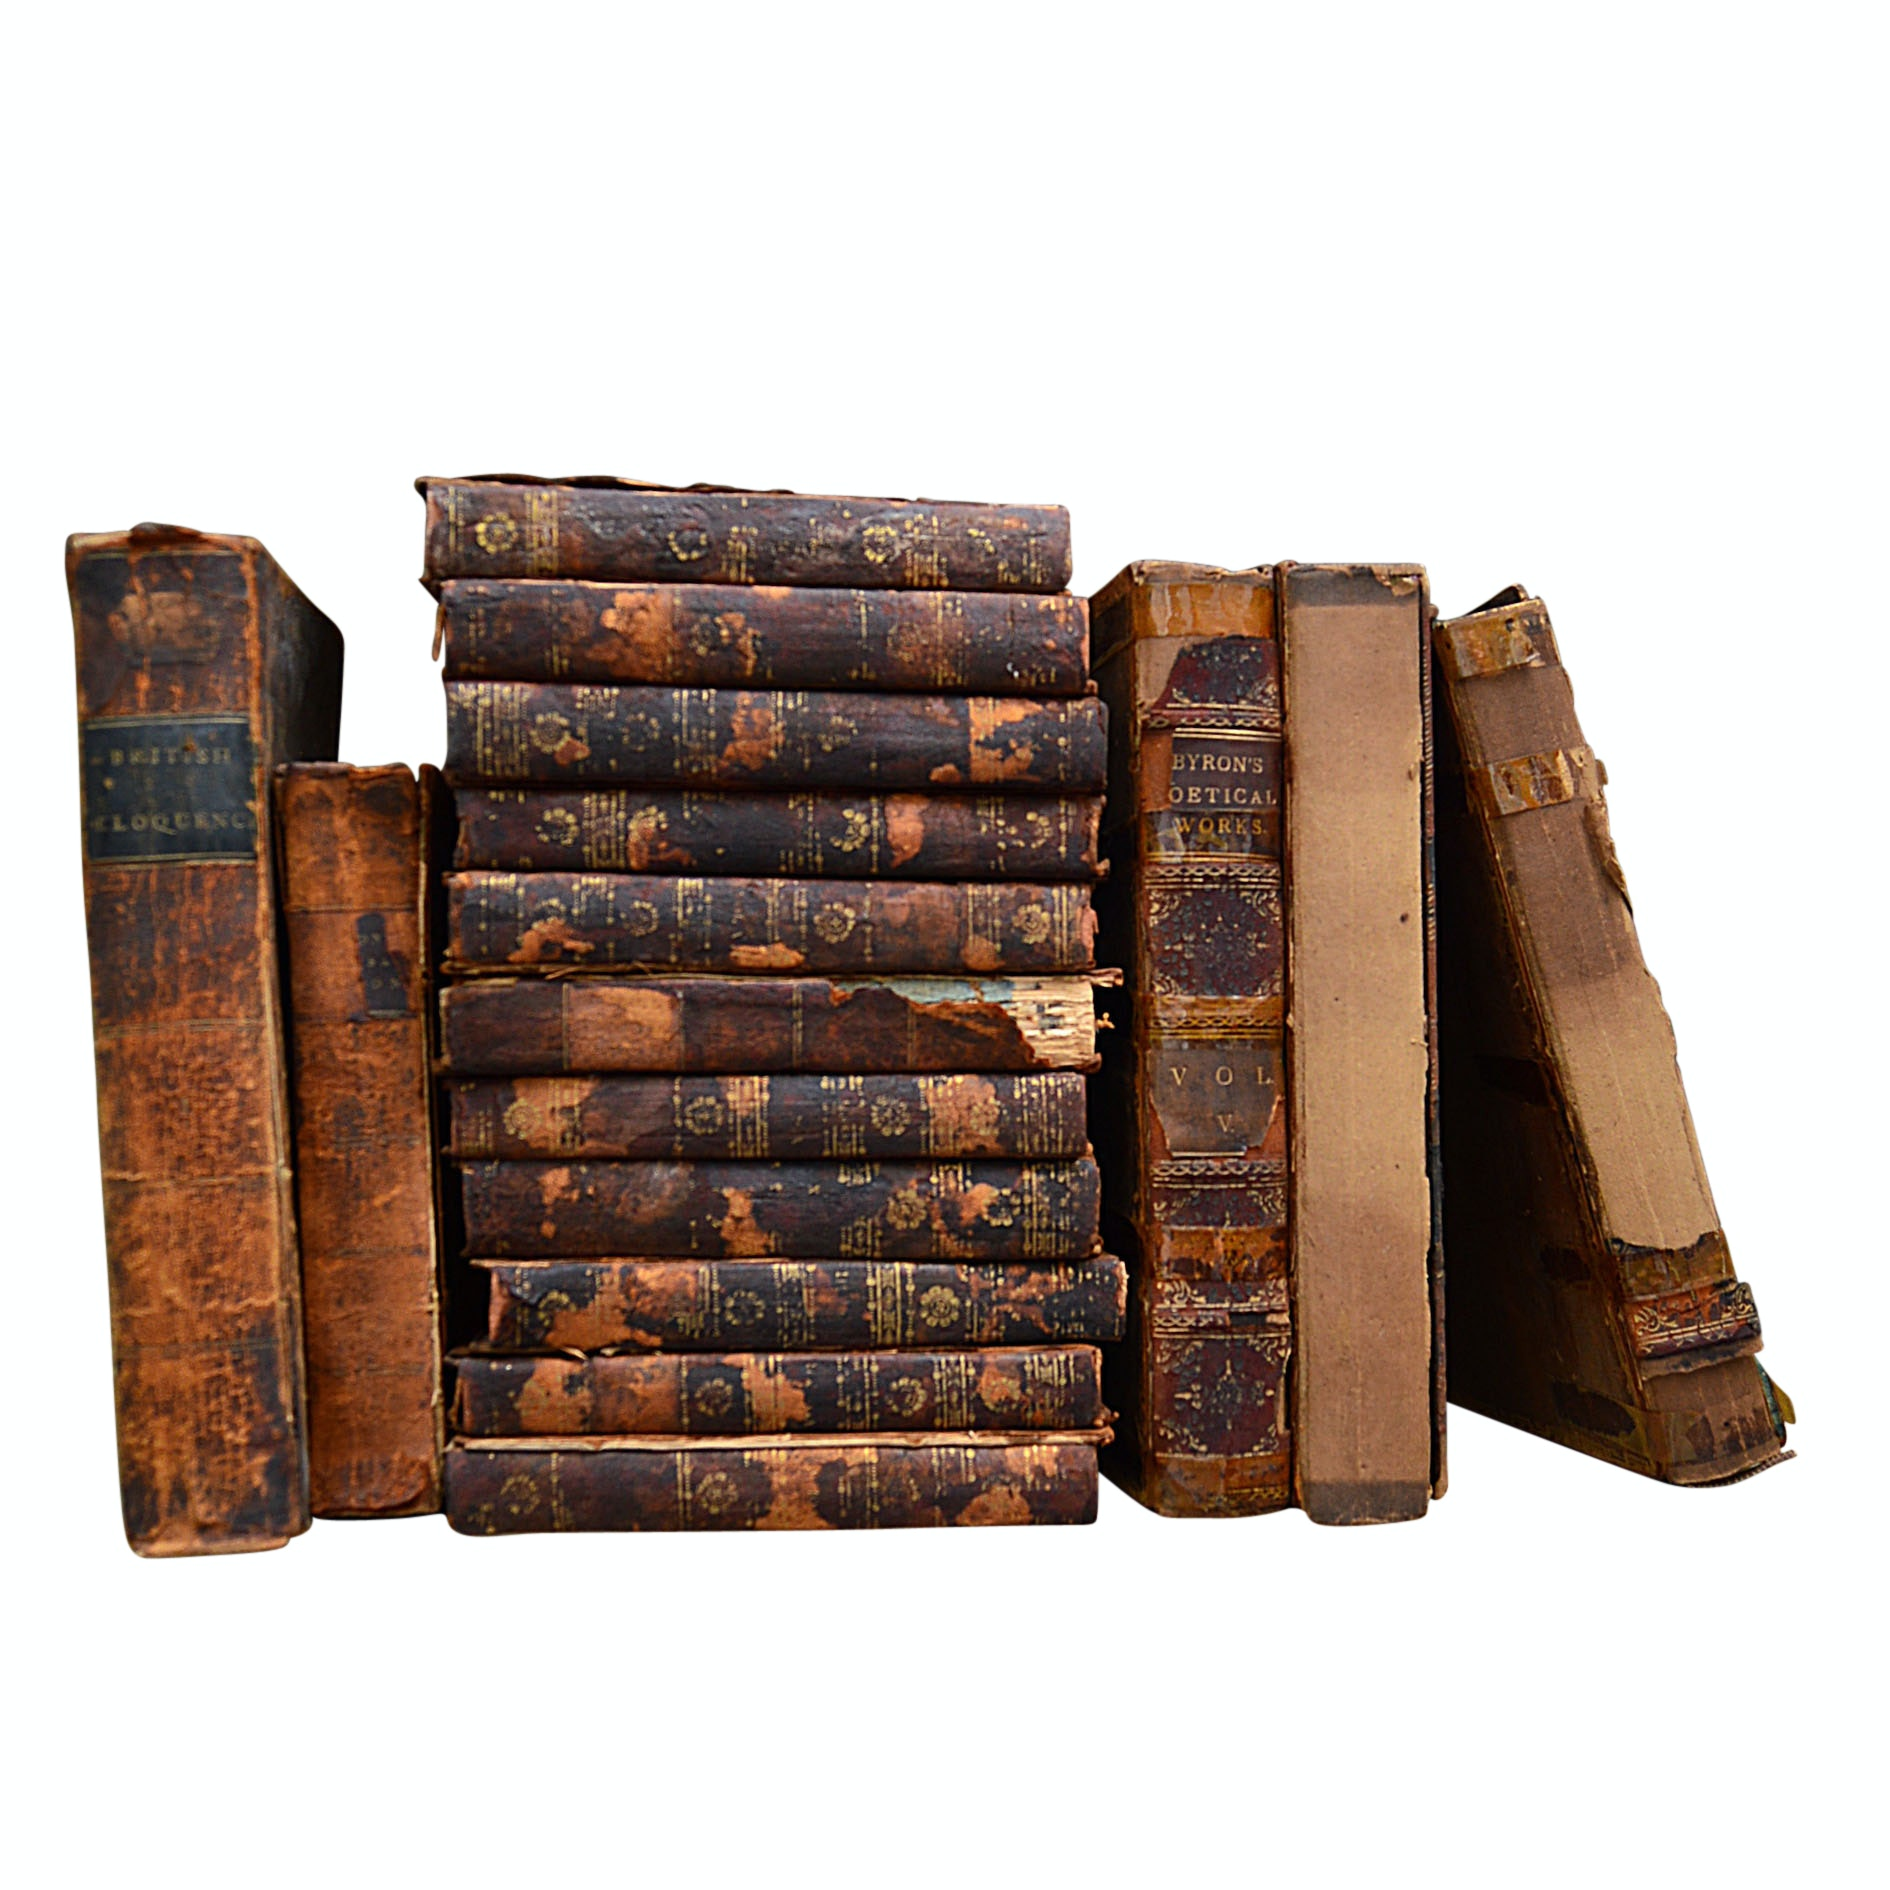 Leather Bound Books with 11-Volume Set, Early to Mid 19th Century